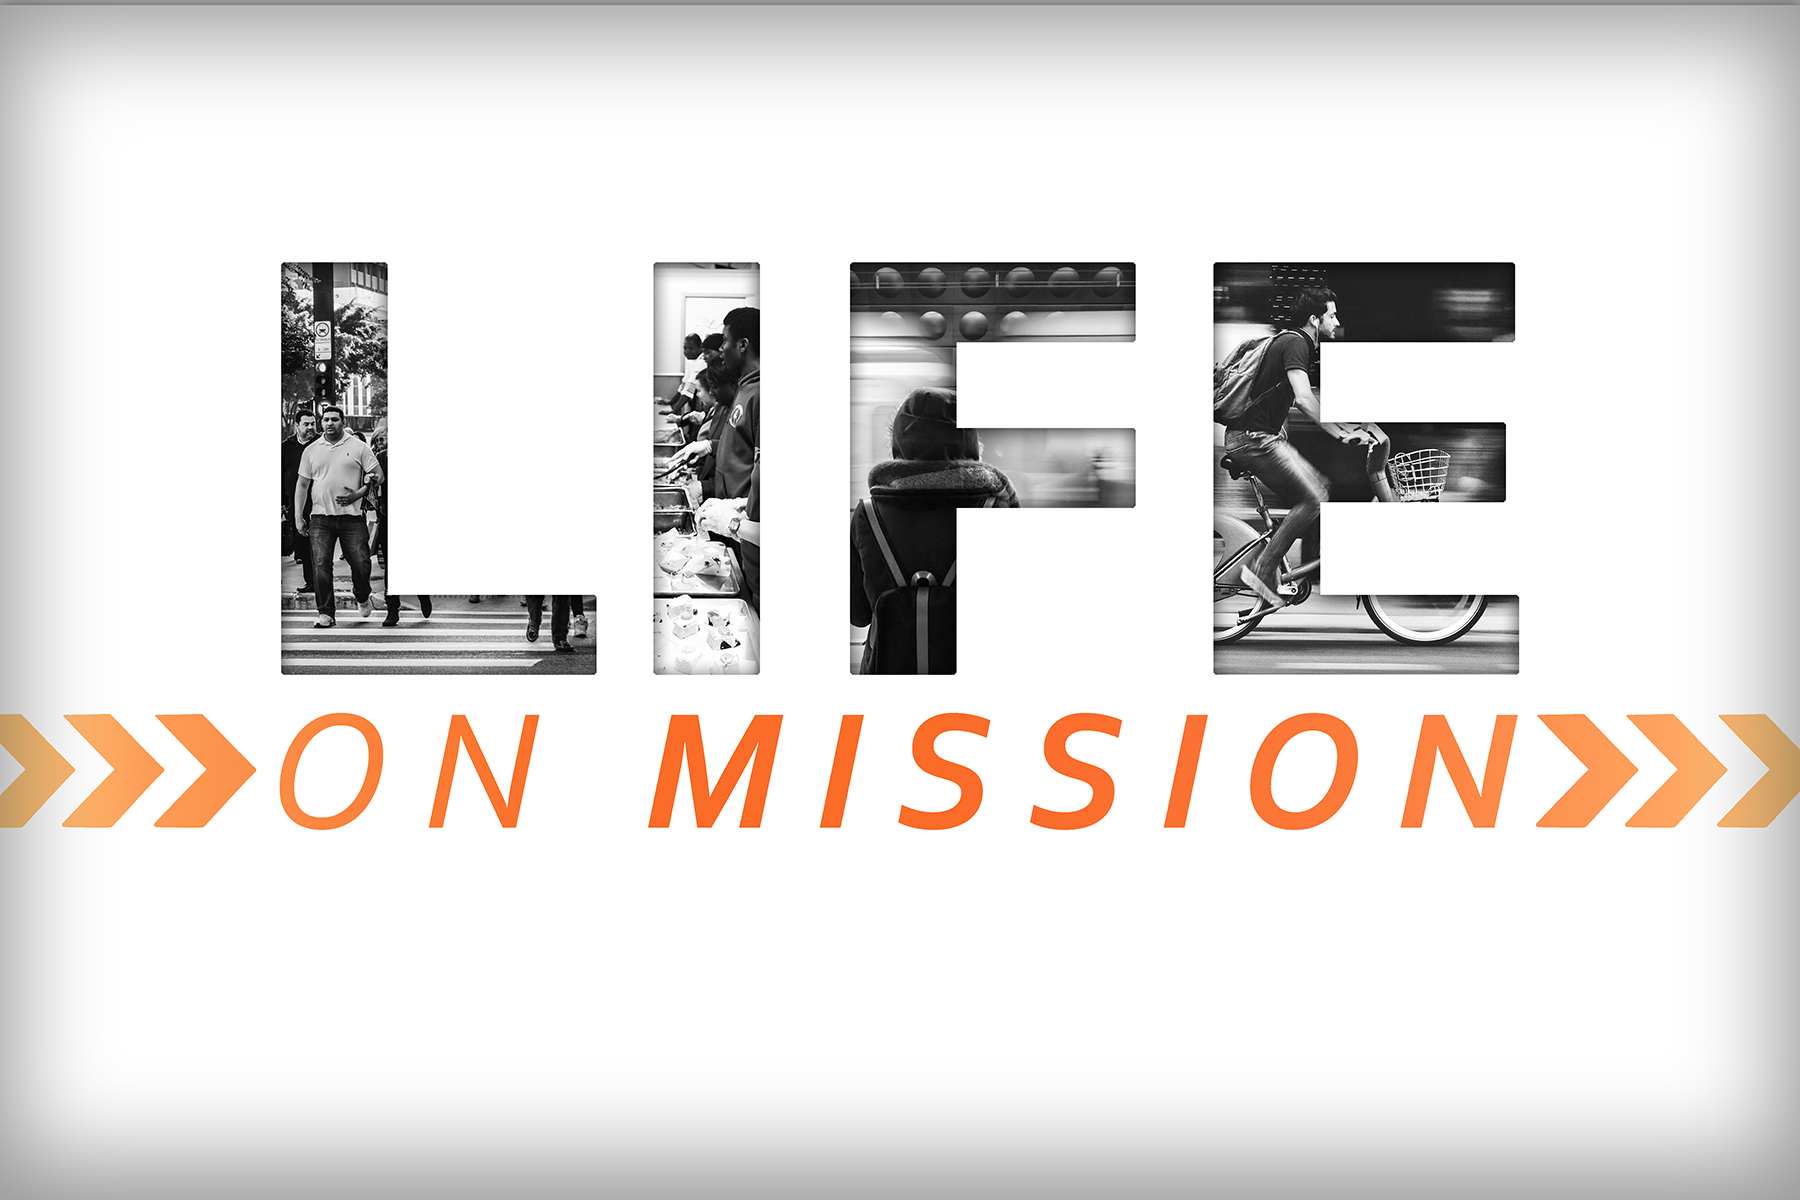 Lifeonmission